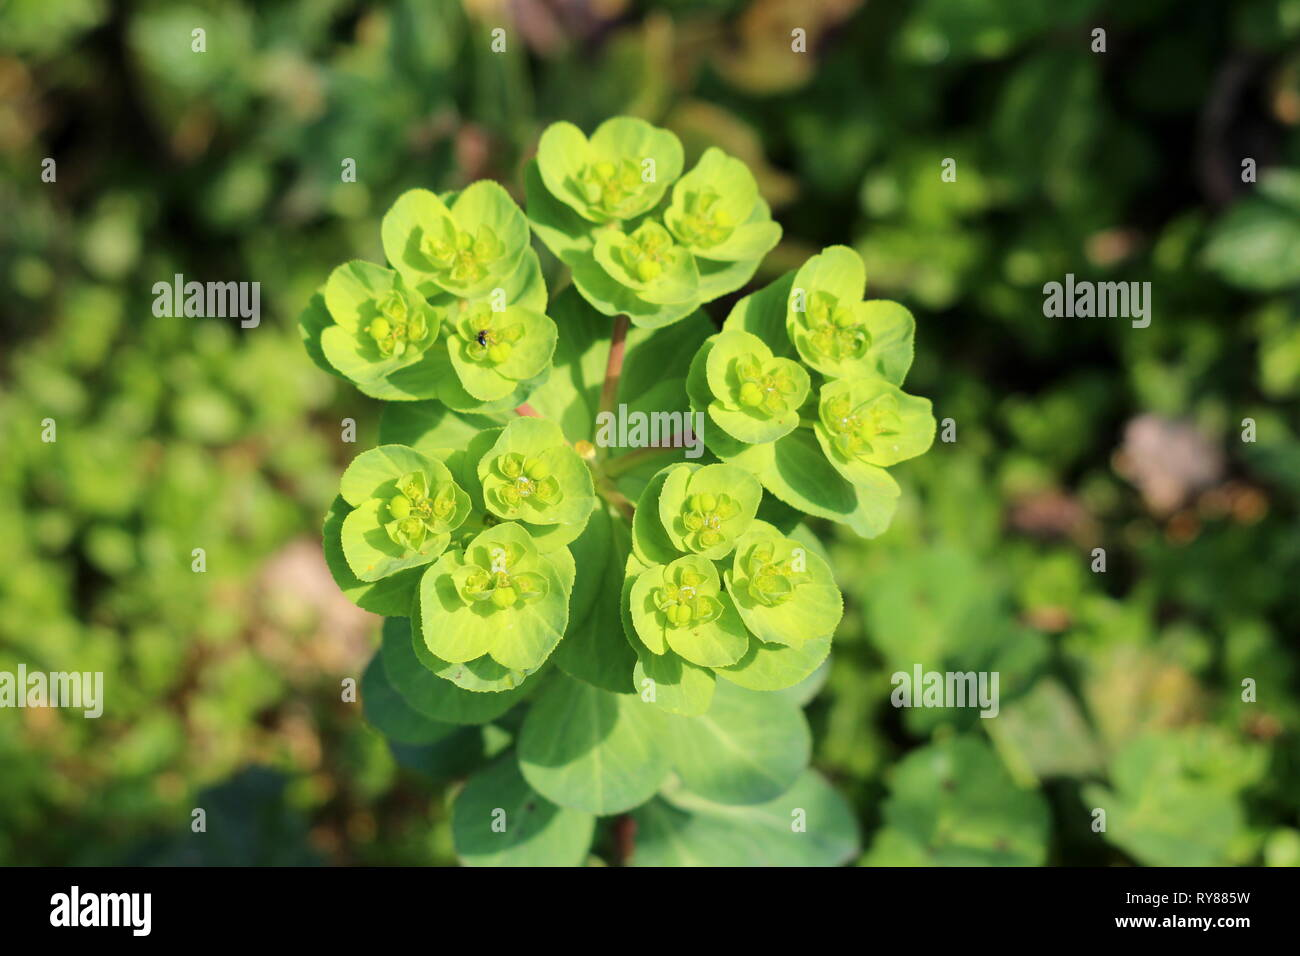 Sun spurge or Euphorbia helioscopia or Wart spurge or Umbrella milkweed or Madwomans milk herbaceous annual flowering plant with oval leaves - Stock Image